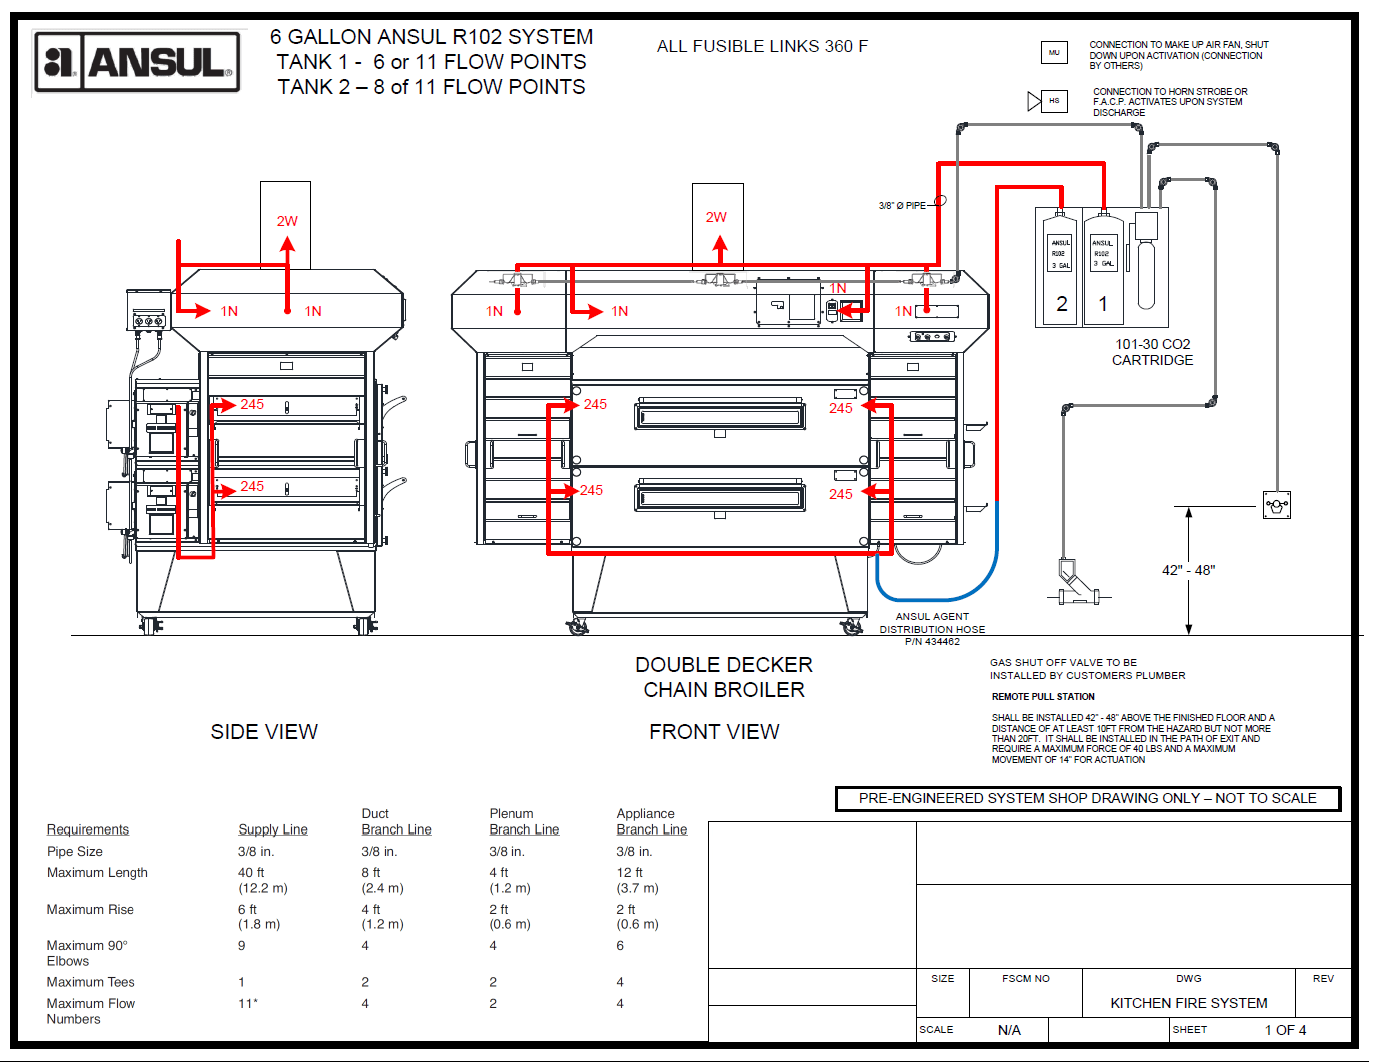 Light With Outlet Wiring Diagrams moreover Electric Motor Trips Breaker in addition Ansul Micro Switch Wiring Diagram Circuit Diagrams in addition Micro Switch Ansul System Wiring Diagram likewise Amusing Voltage Ansul System Wiring Diagram During Operation. on ansul r 102 wiring diagram